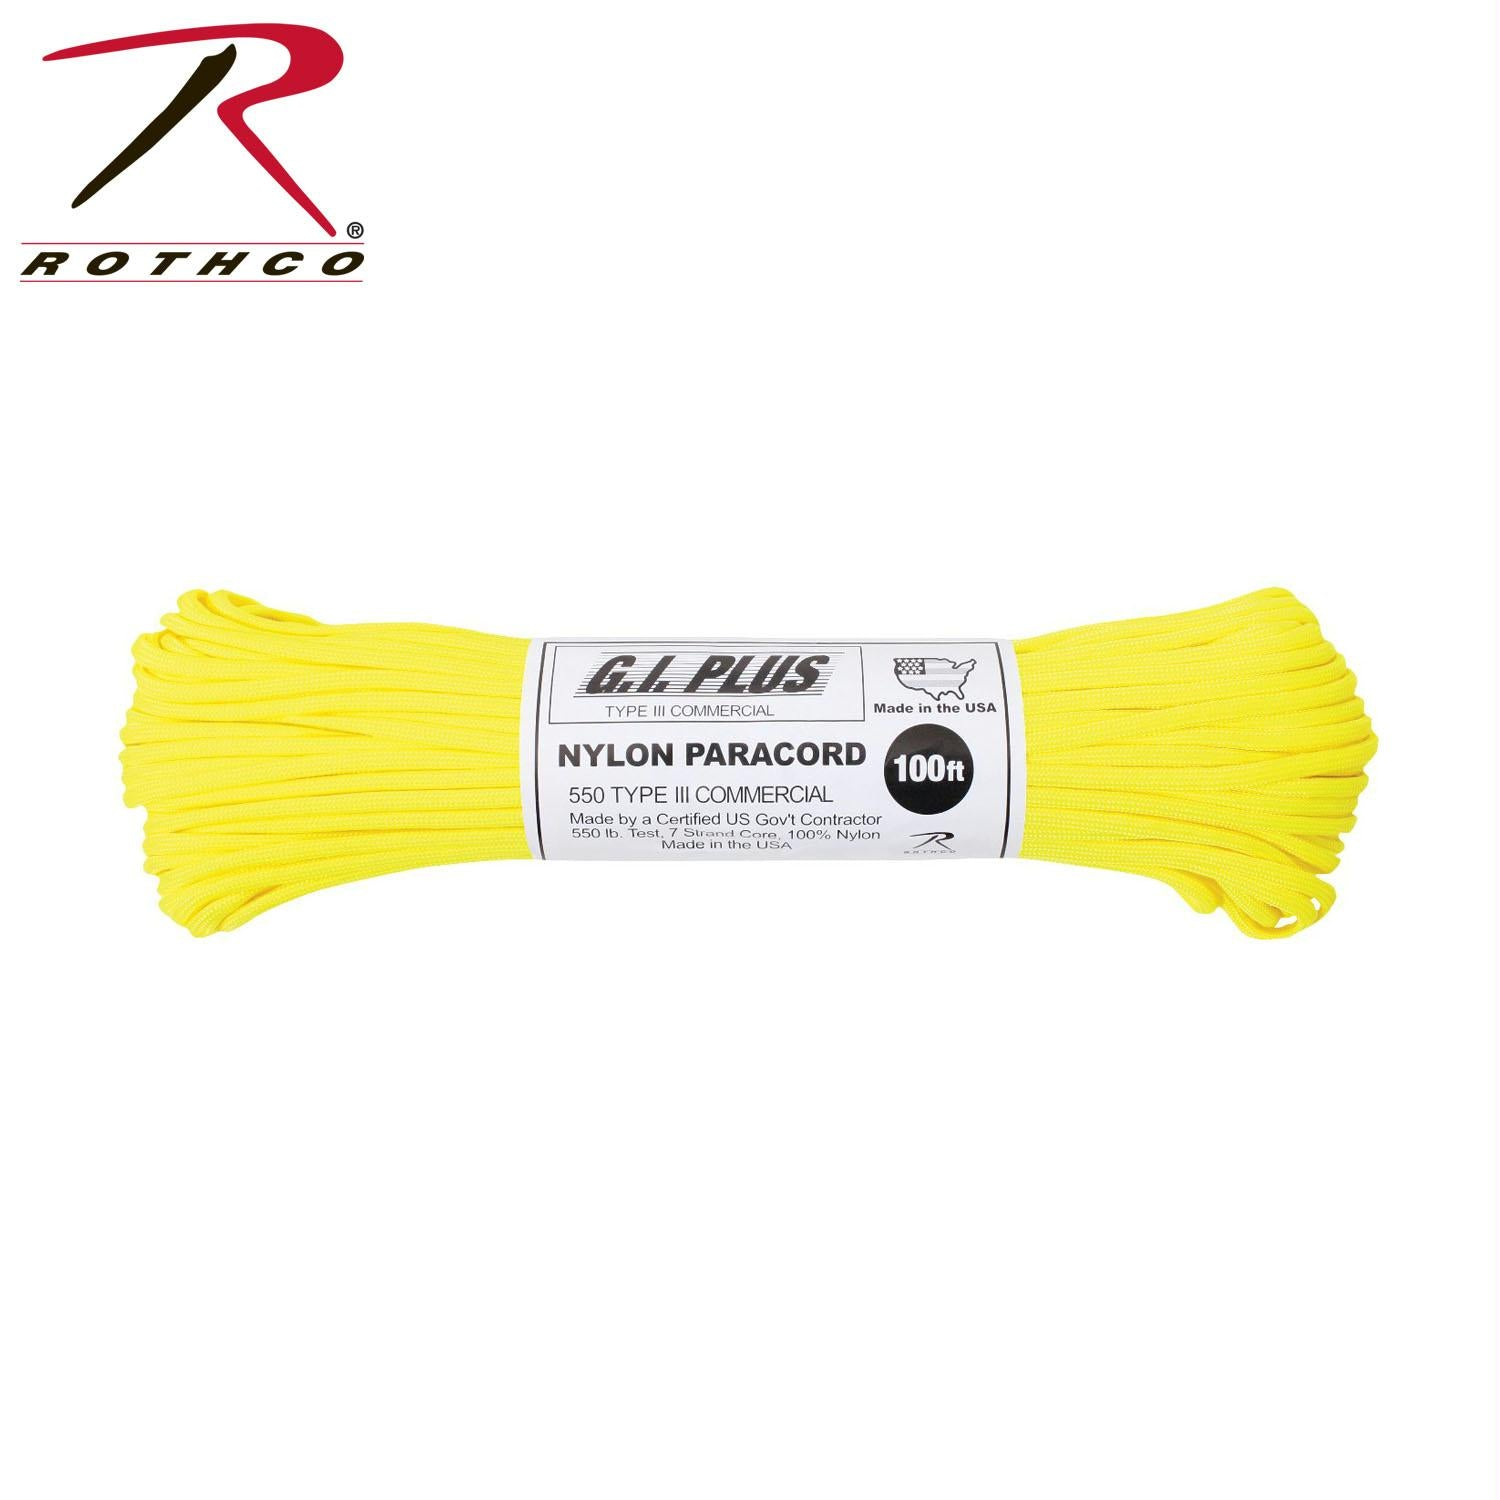 Rothco Nylon Paracord Type III 550 LB 100FT - Neon Yellow